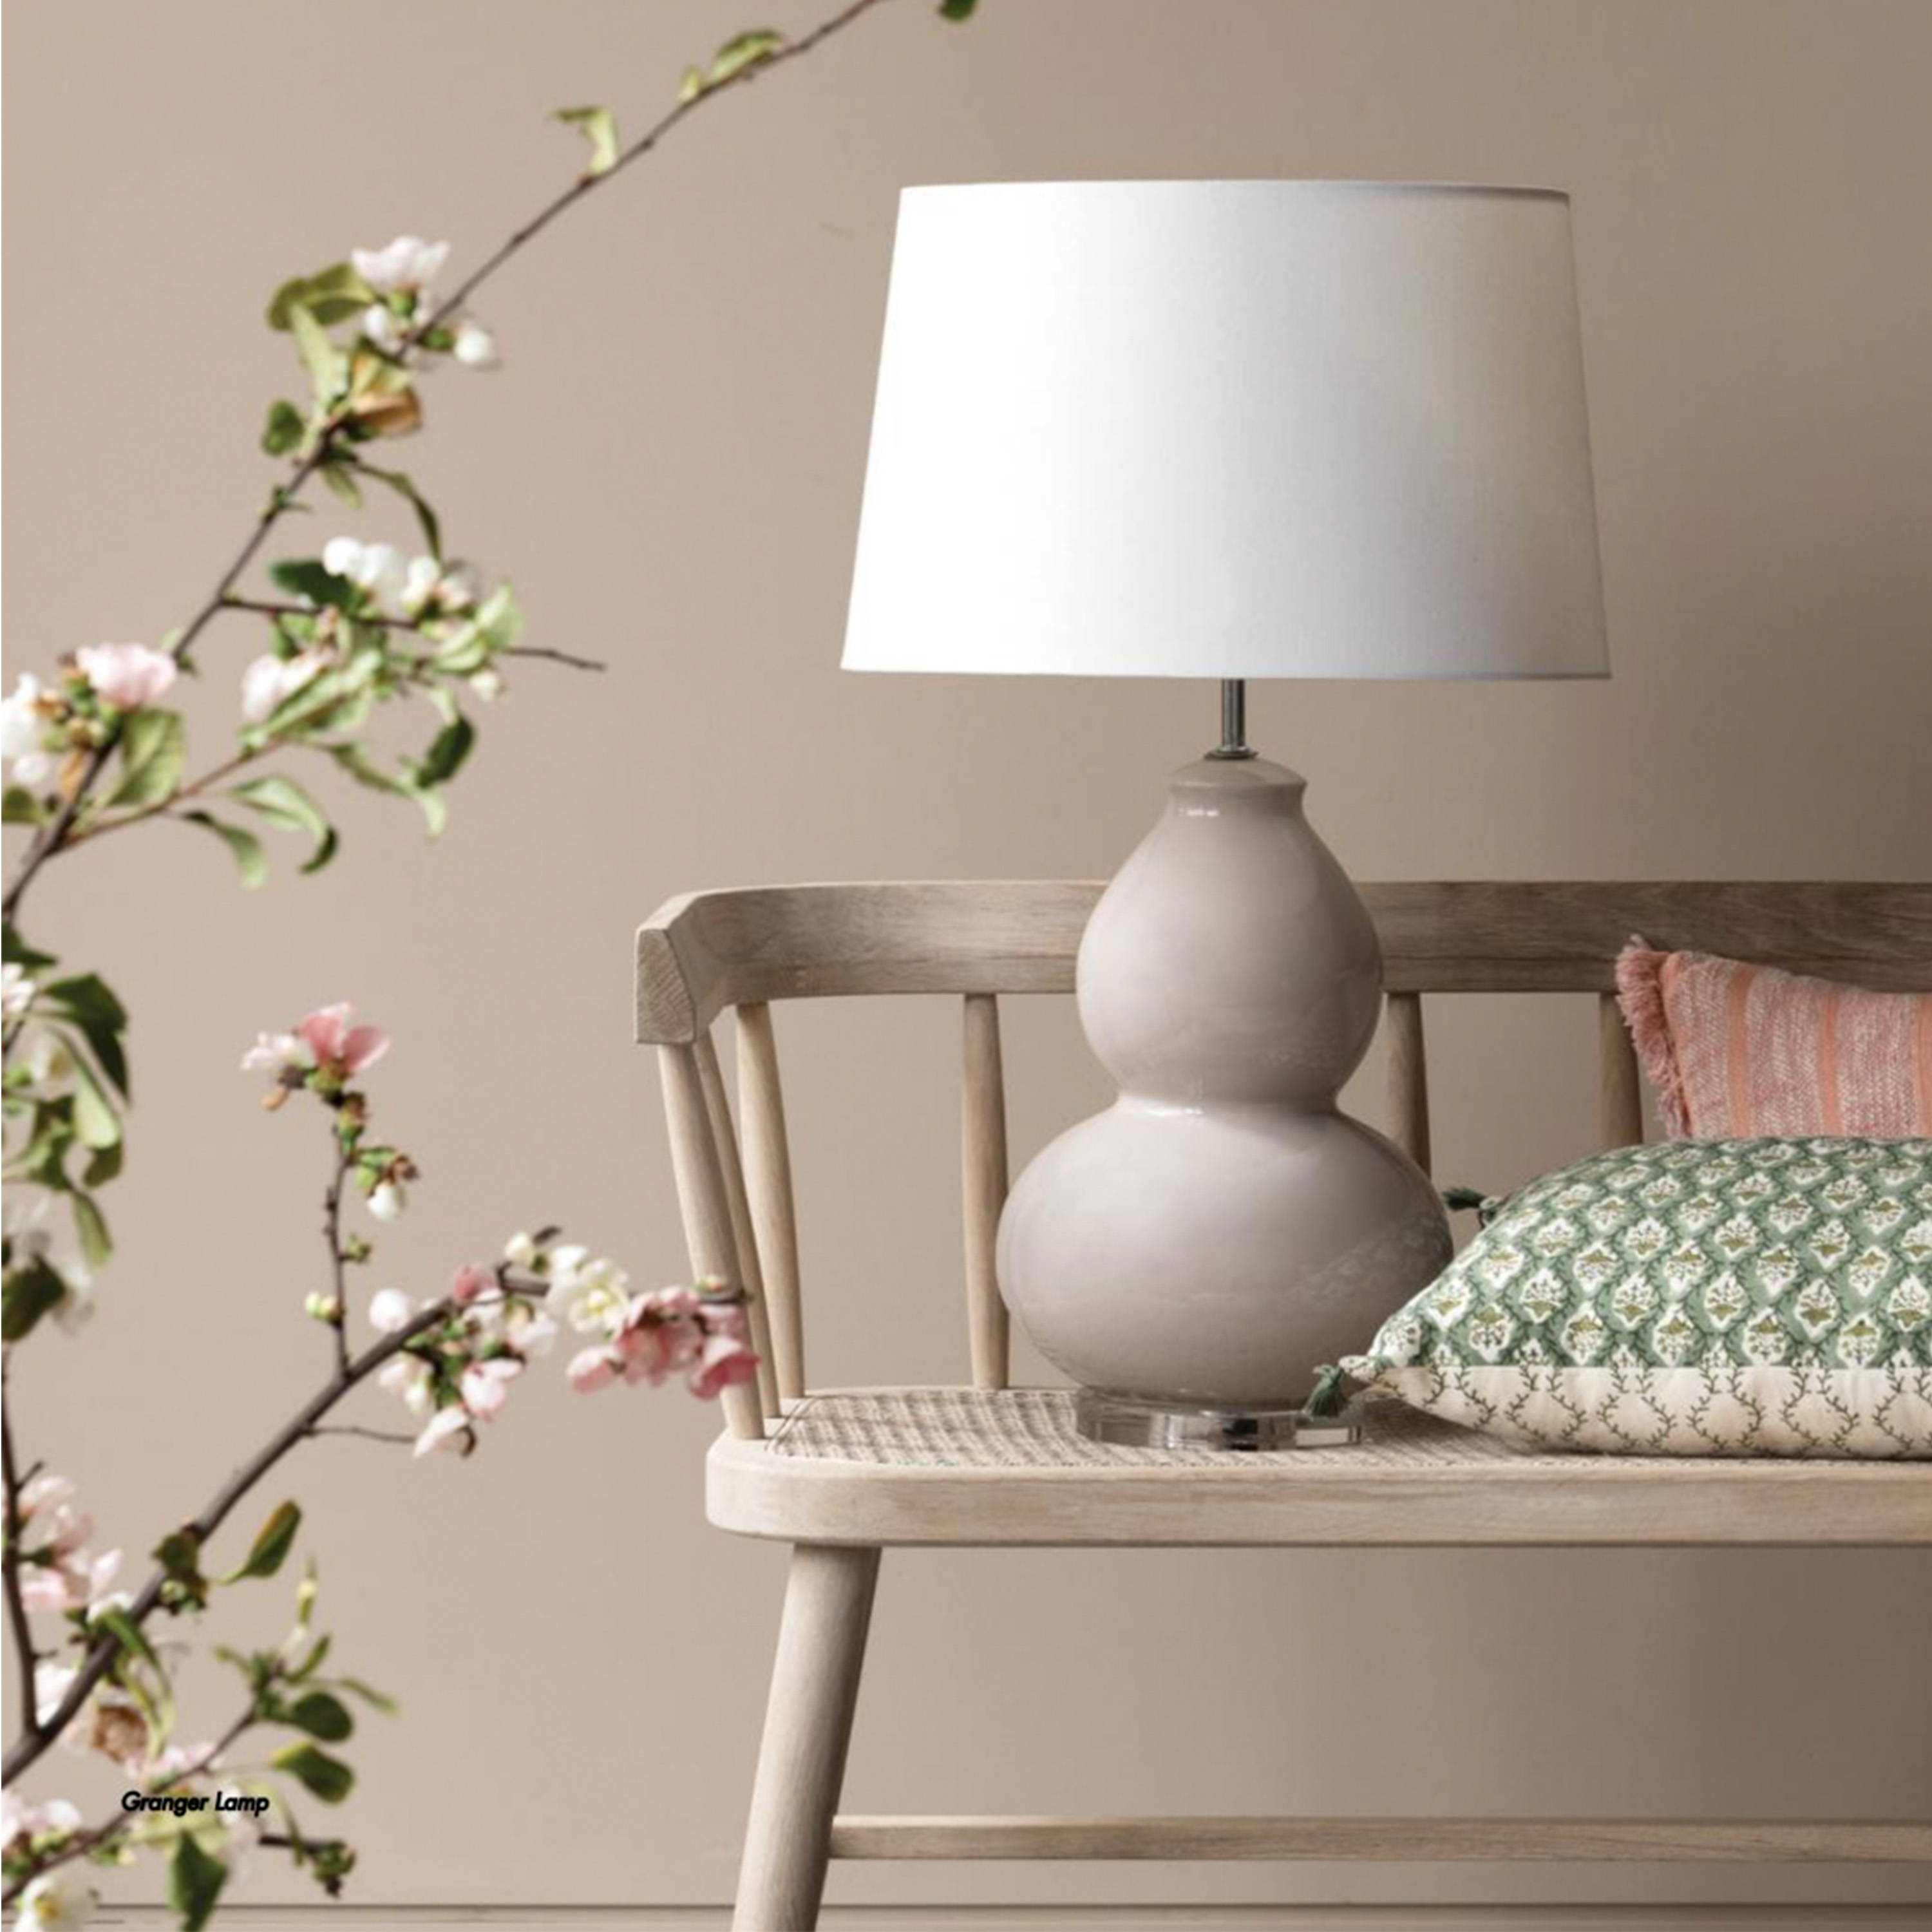 Bench Seat by Canvas and Sasson - A styled image with bench seat, lamp and cushions by Canvas and Sasson